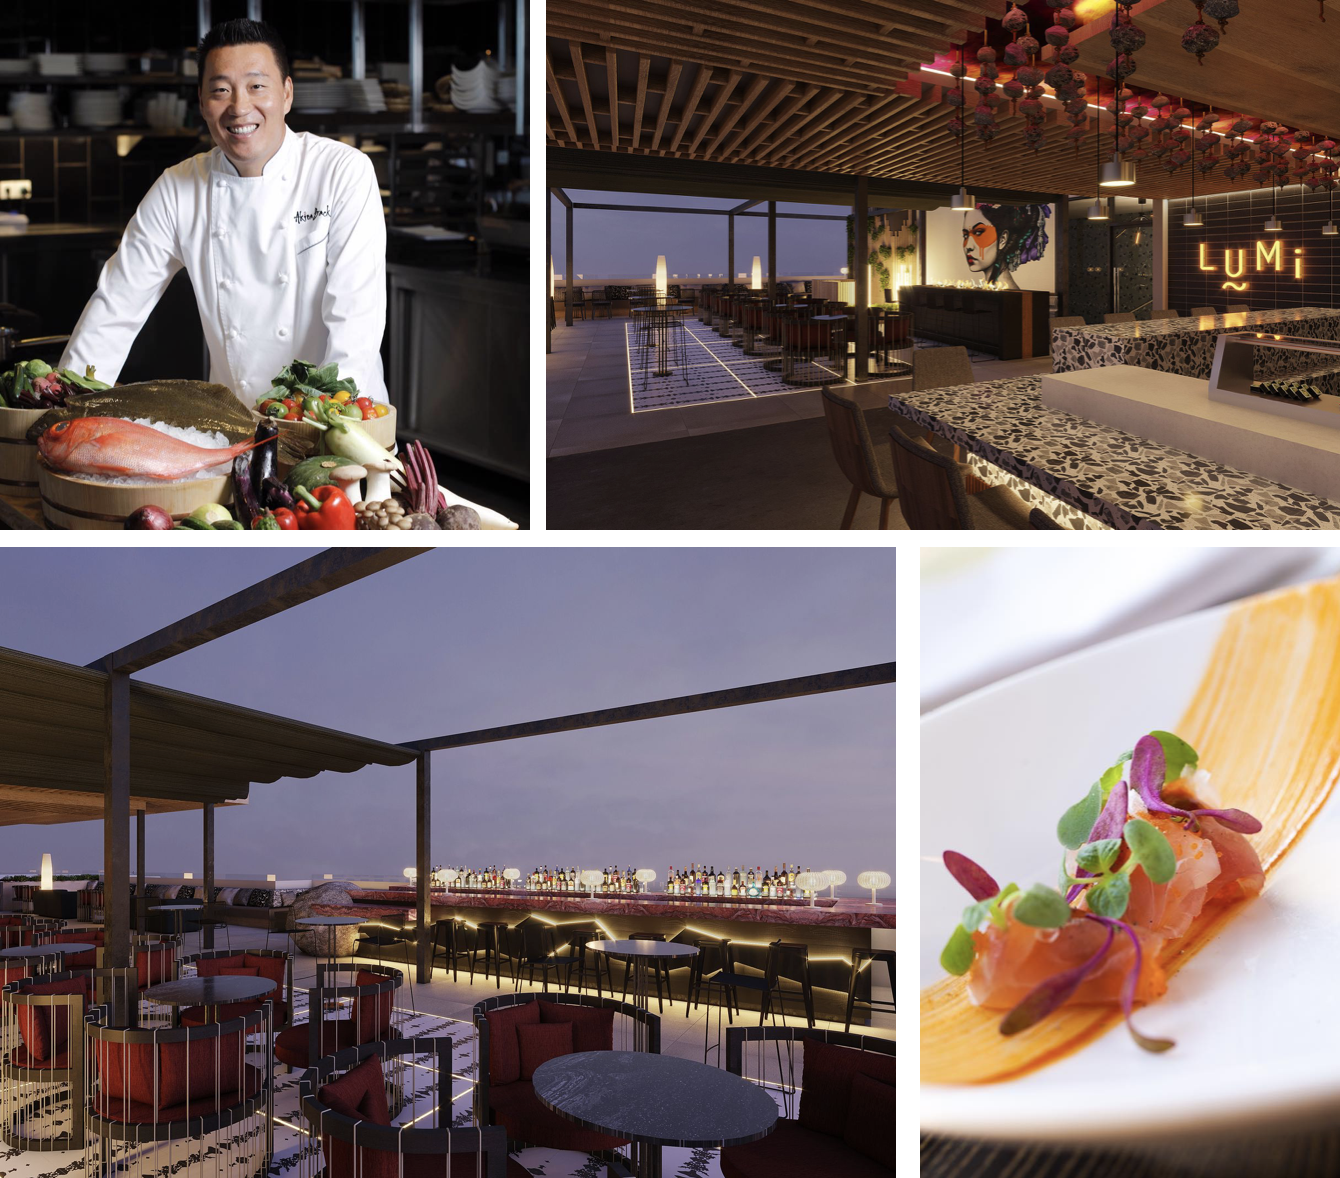 Sandiegoville Michelin Starred Chef Signed On To Lead Rooftop